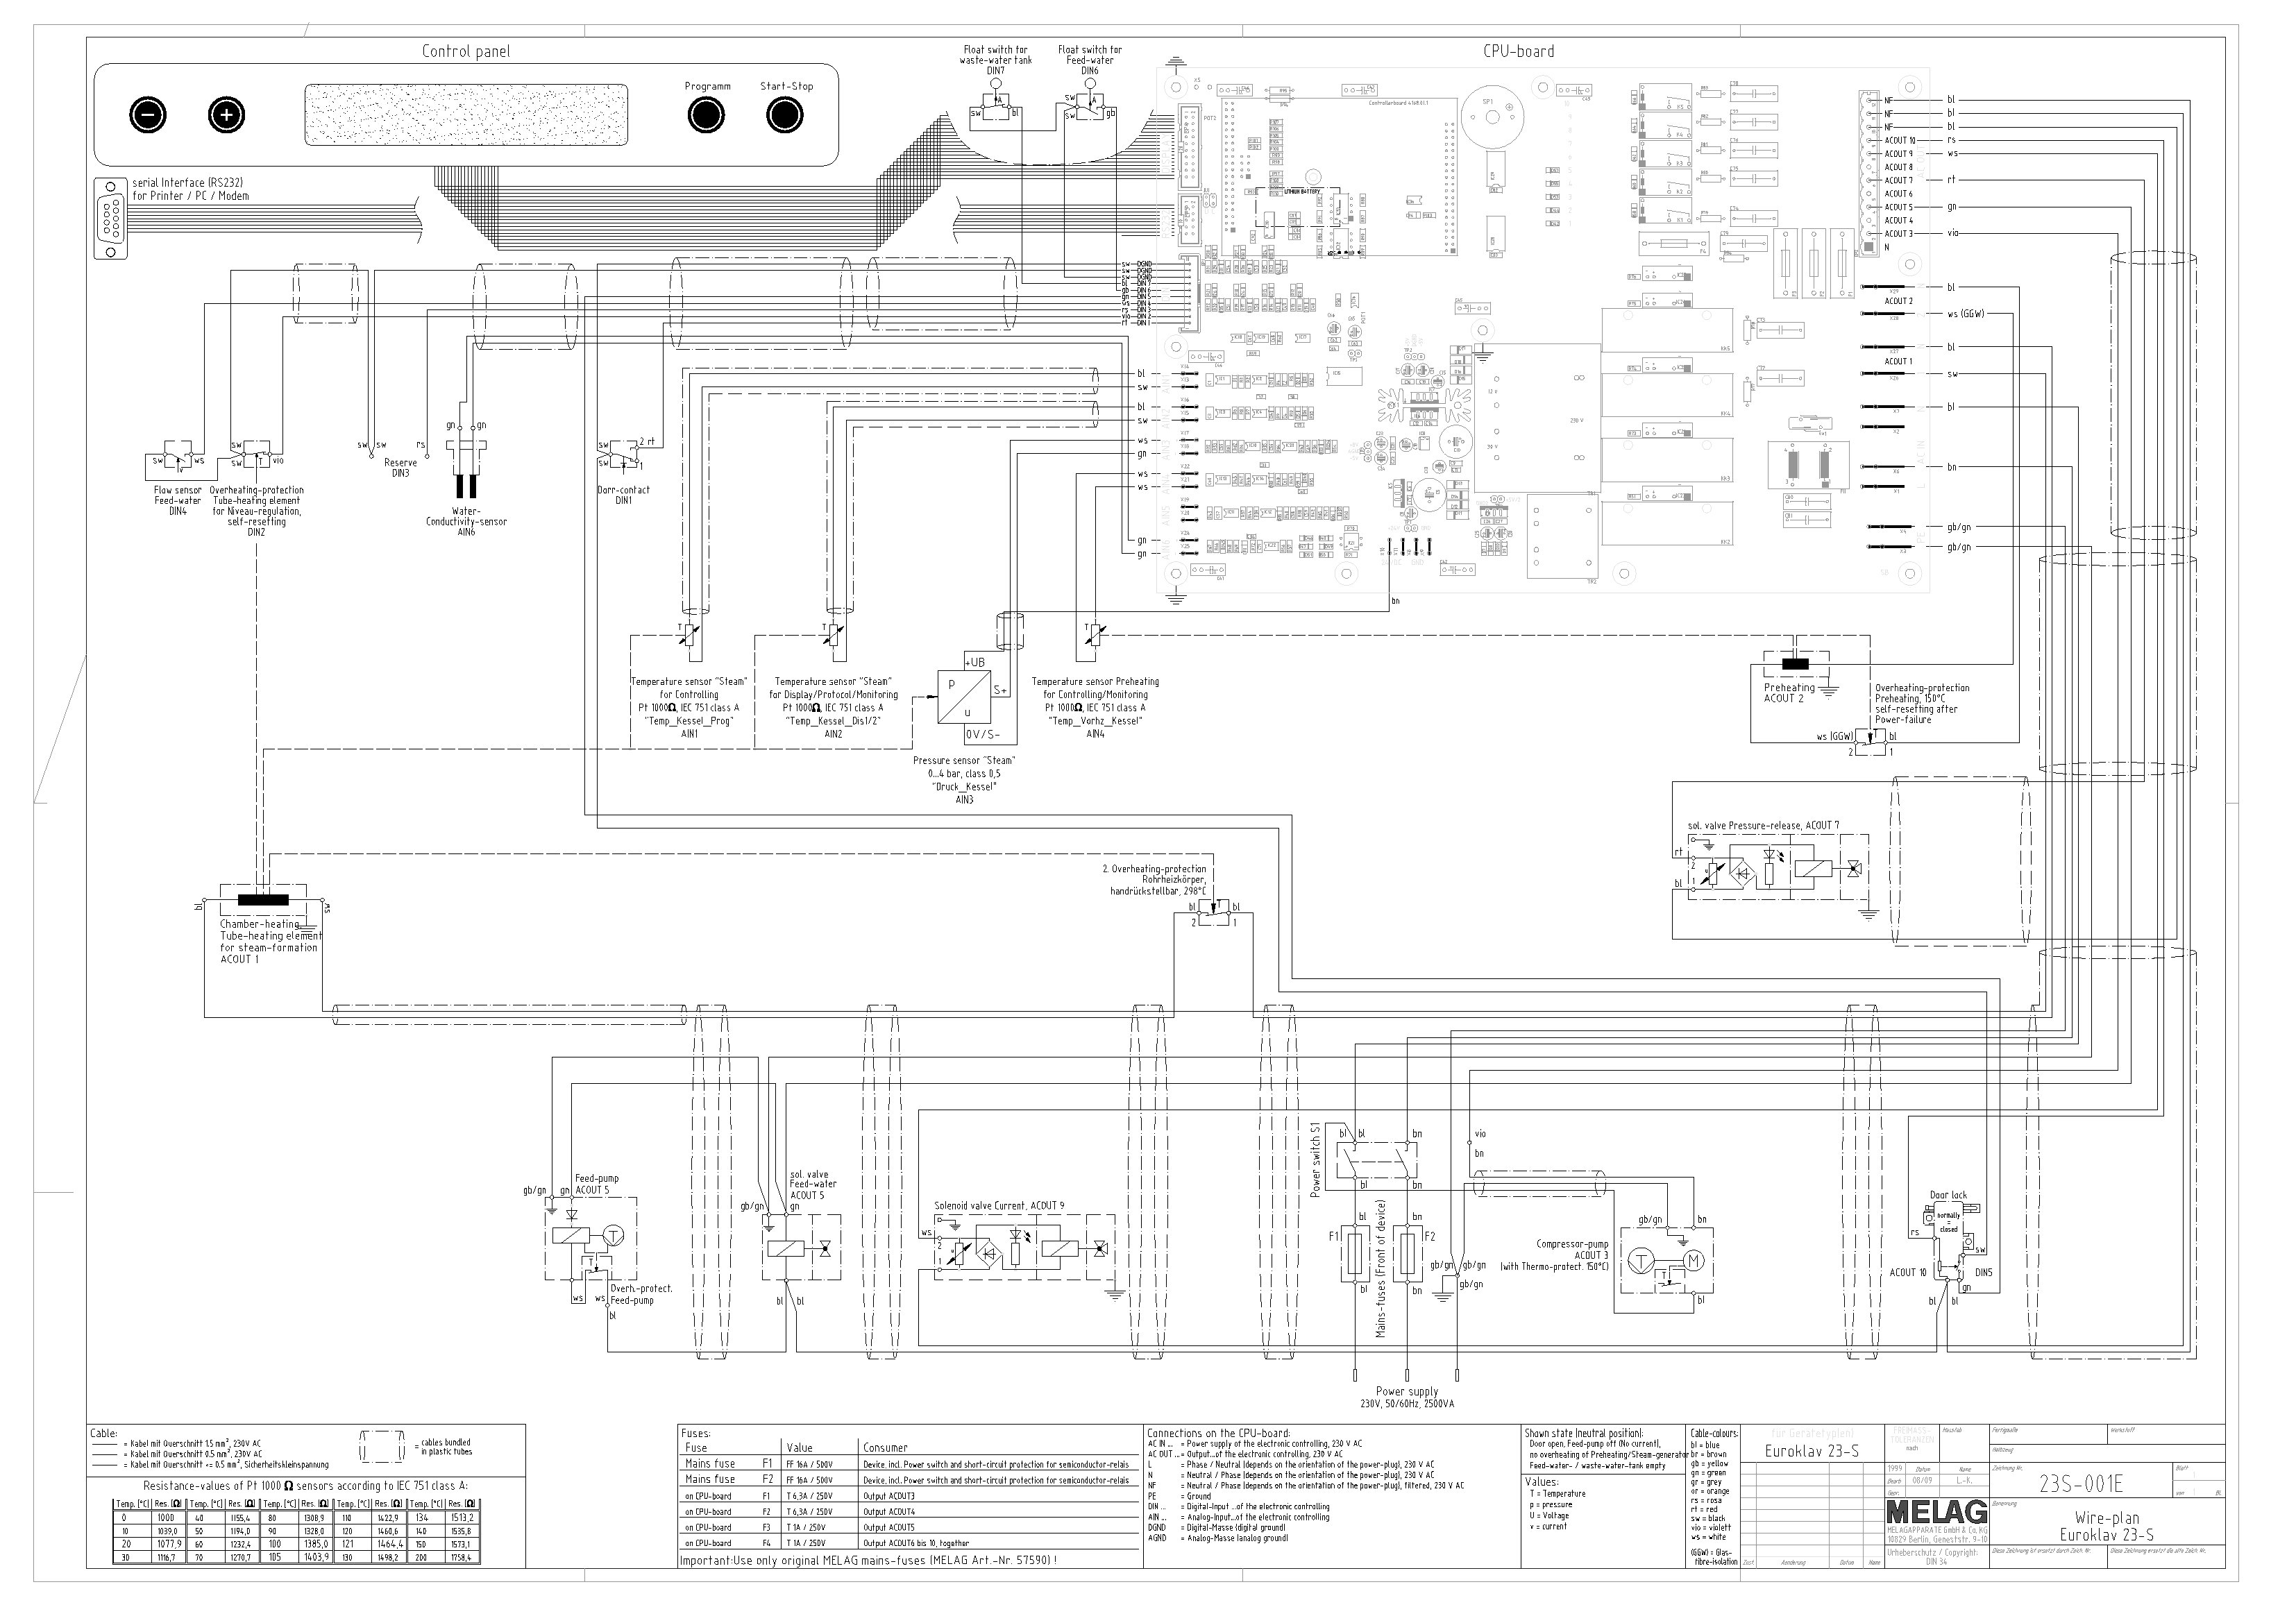 Melag_23 S_ _Wire_plan frank's autoclaves Light Switch Wiring Diagram at nearapp.co